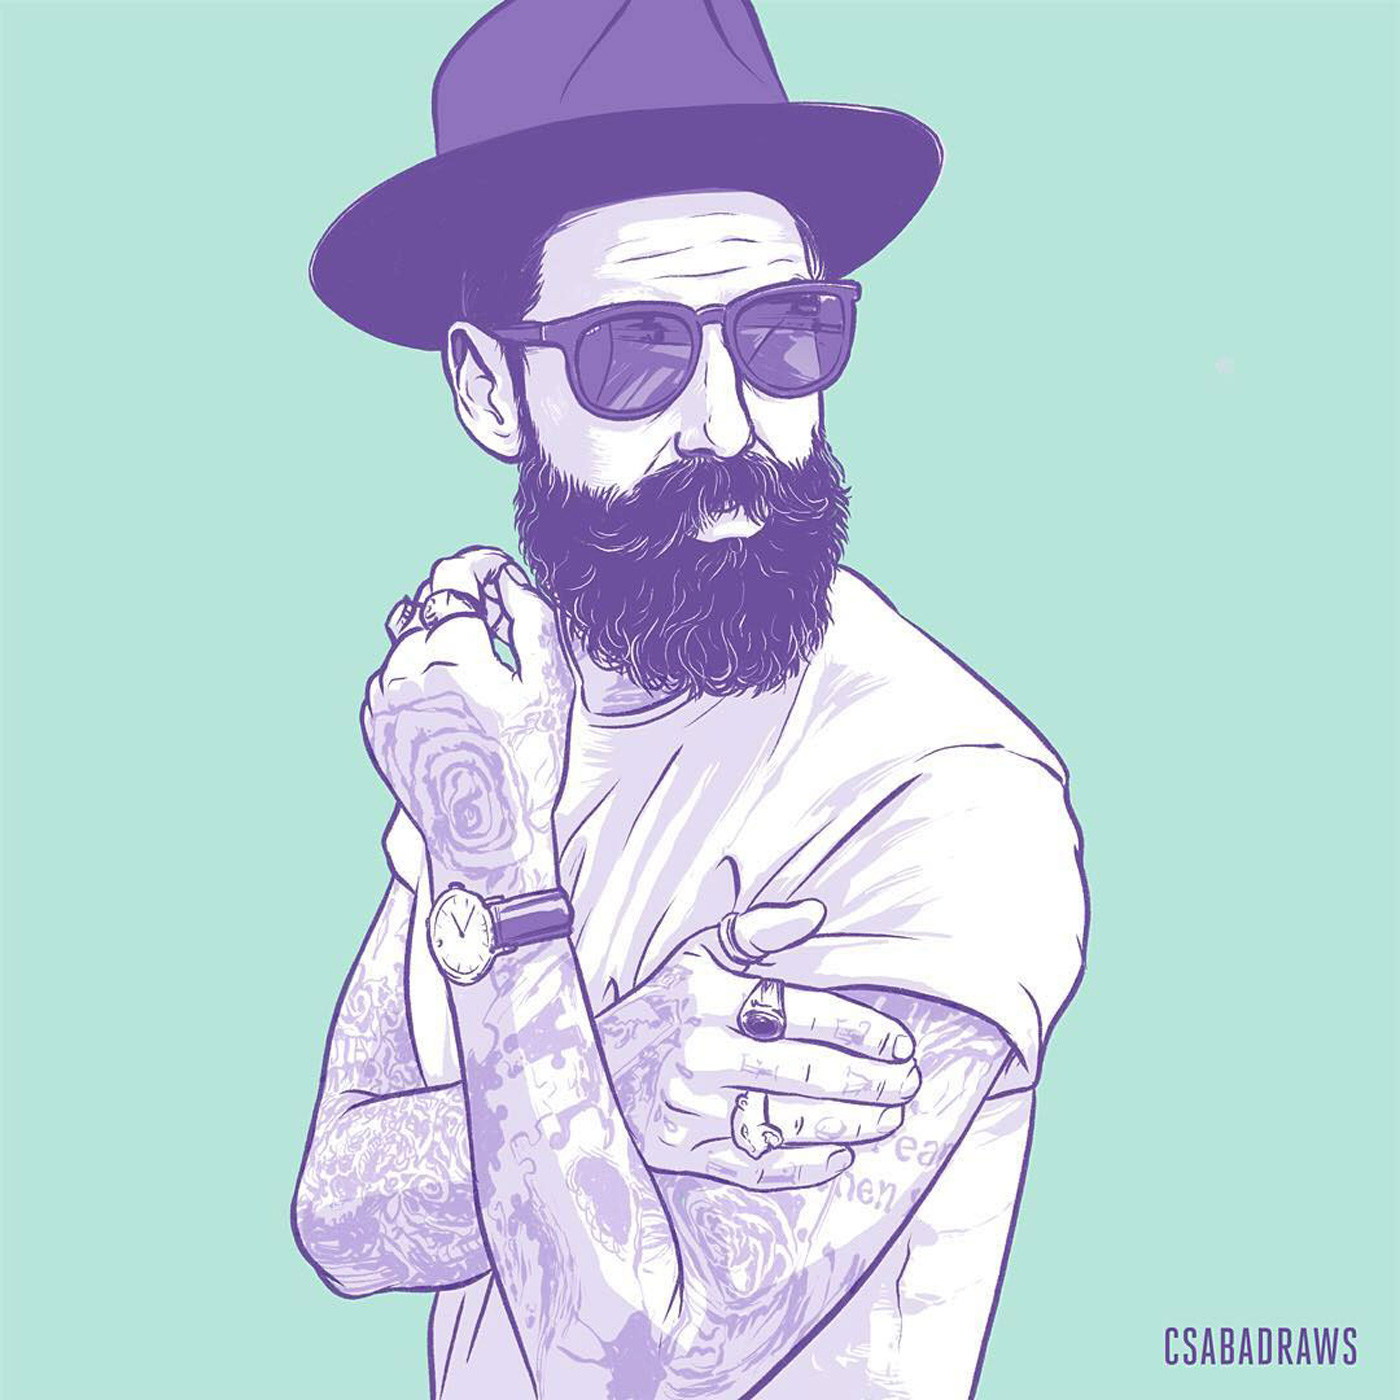 Drawing of a Guy With Hat, Beard and Sunglass